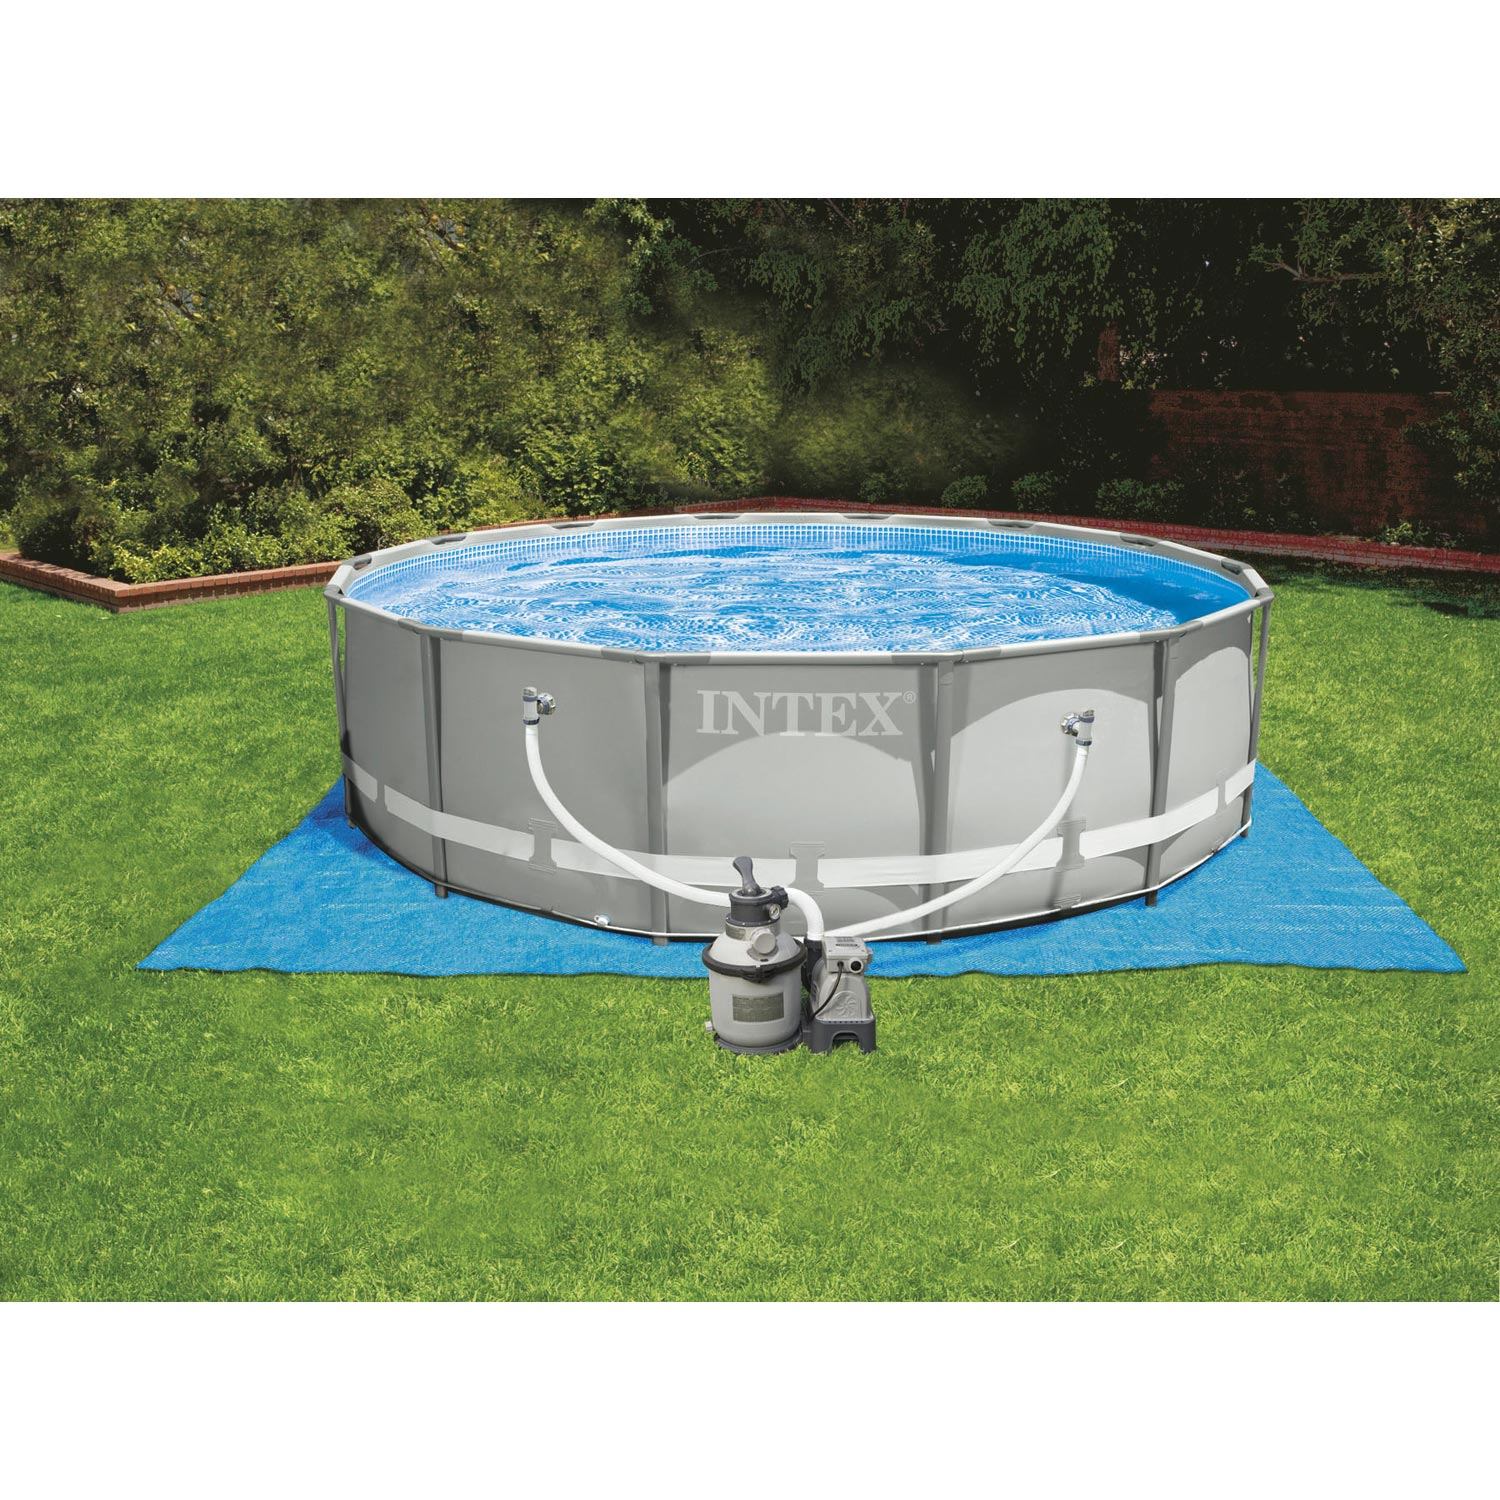 Piscine ultra frame for Piscine hors sol intex prix